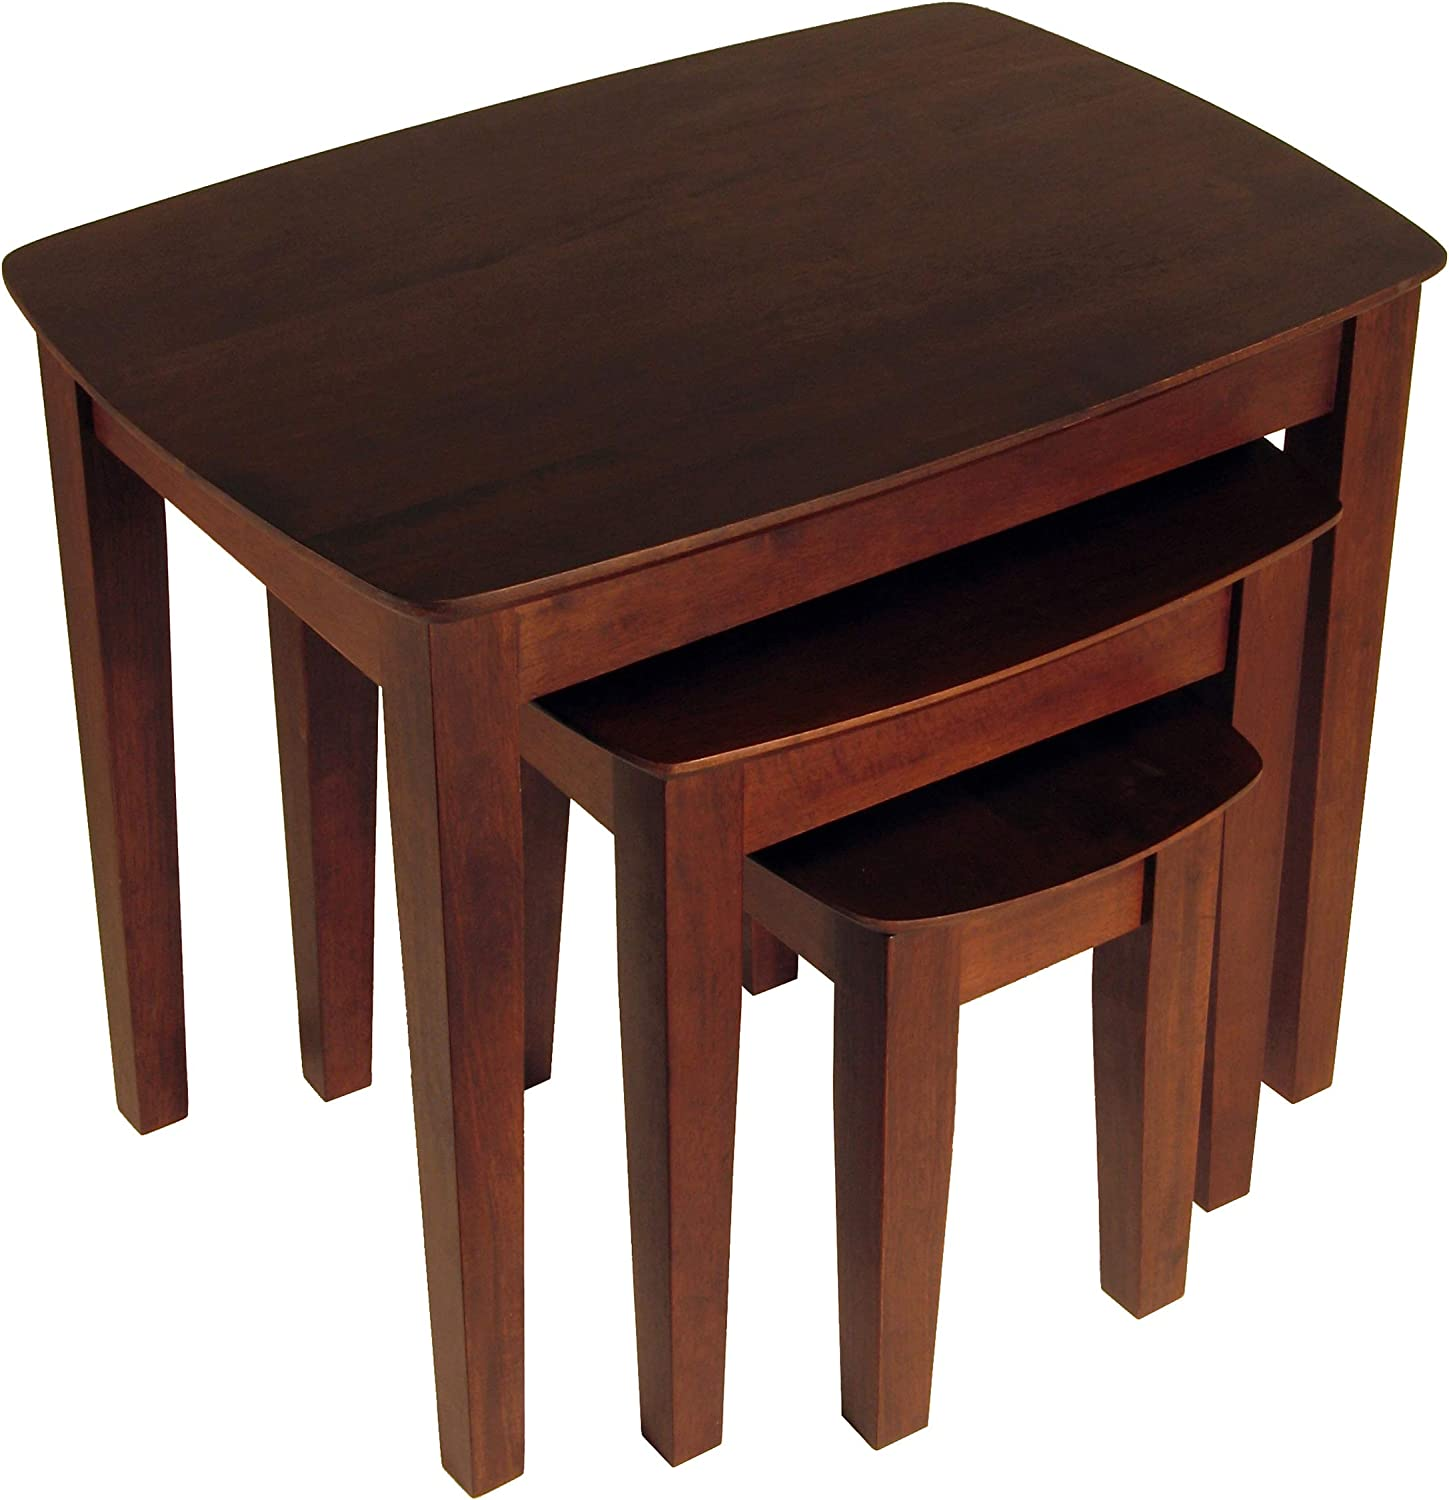 Winsome Wood Nesting Table, Antique Walnut